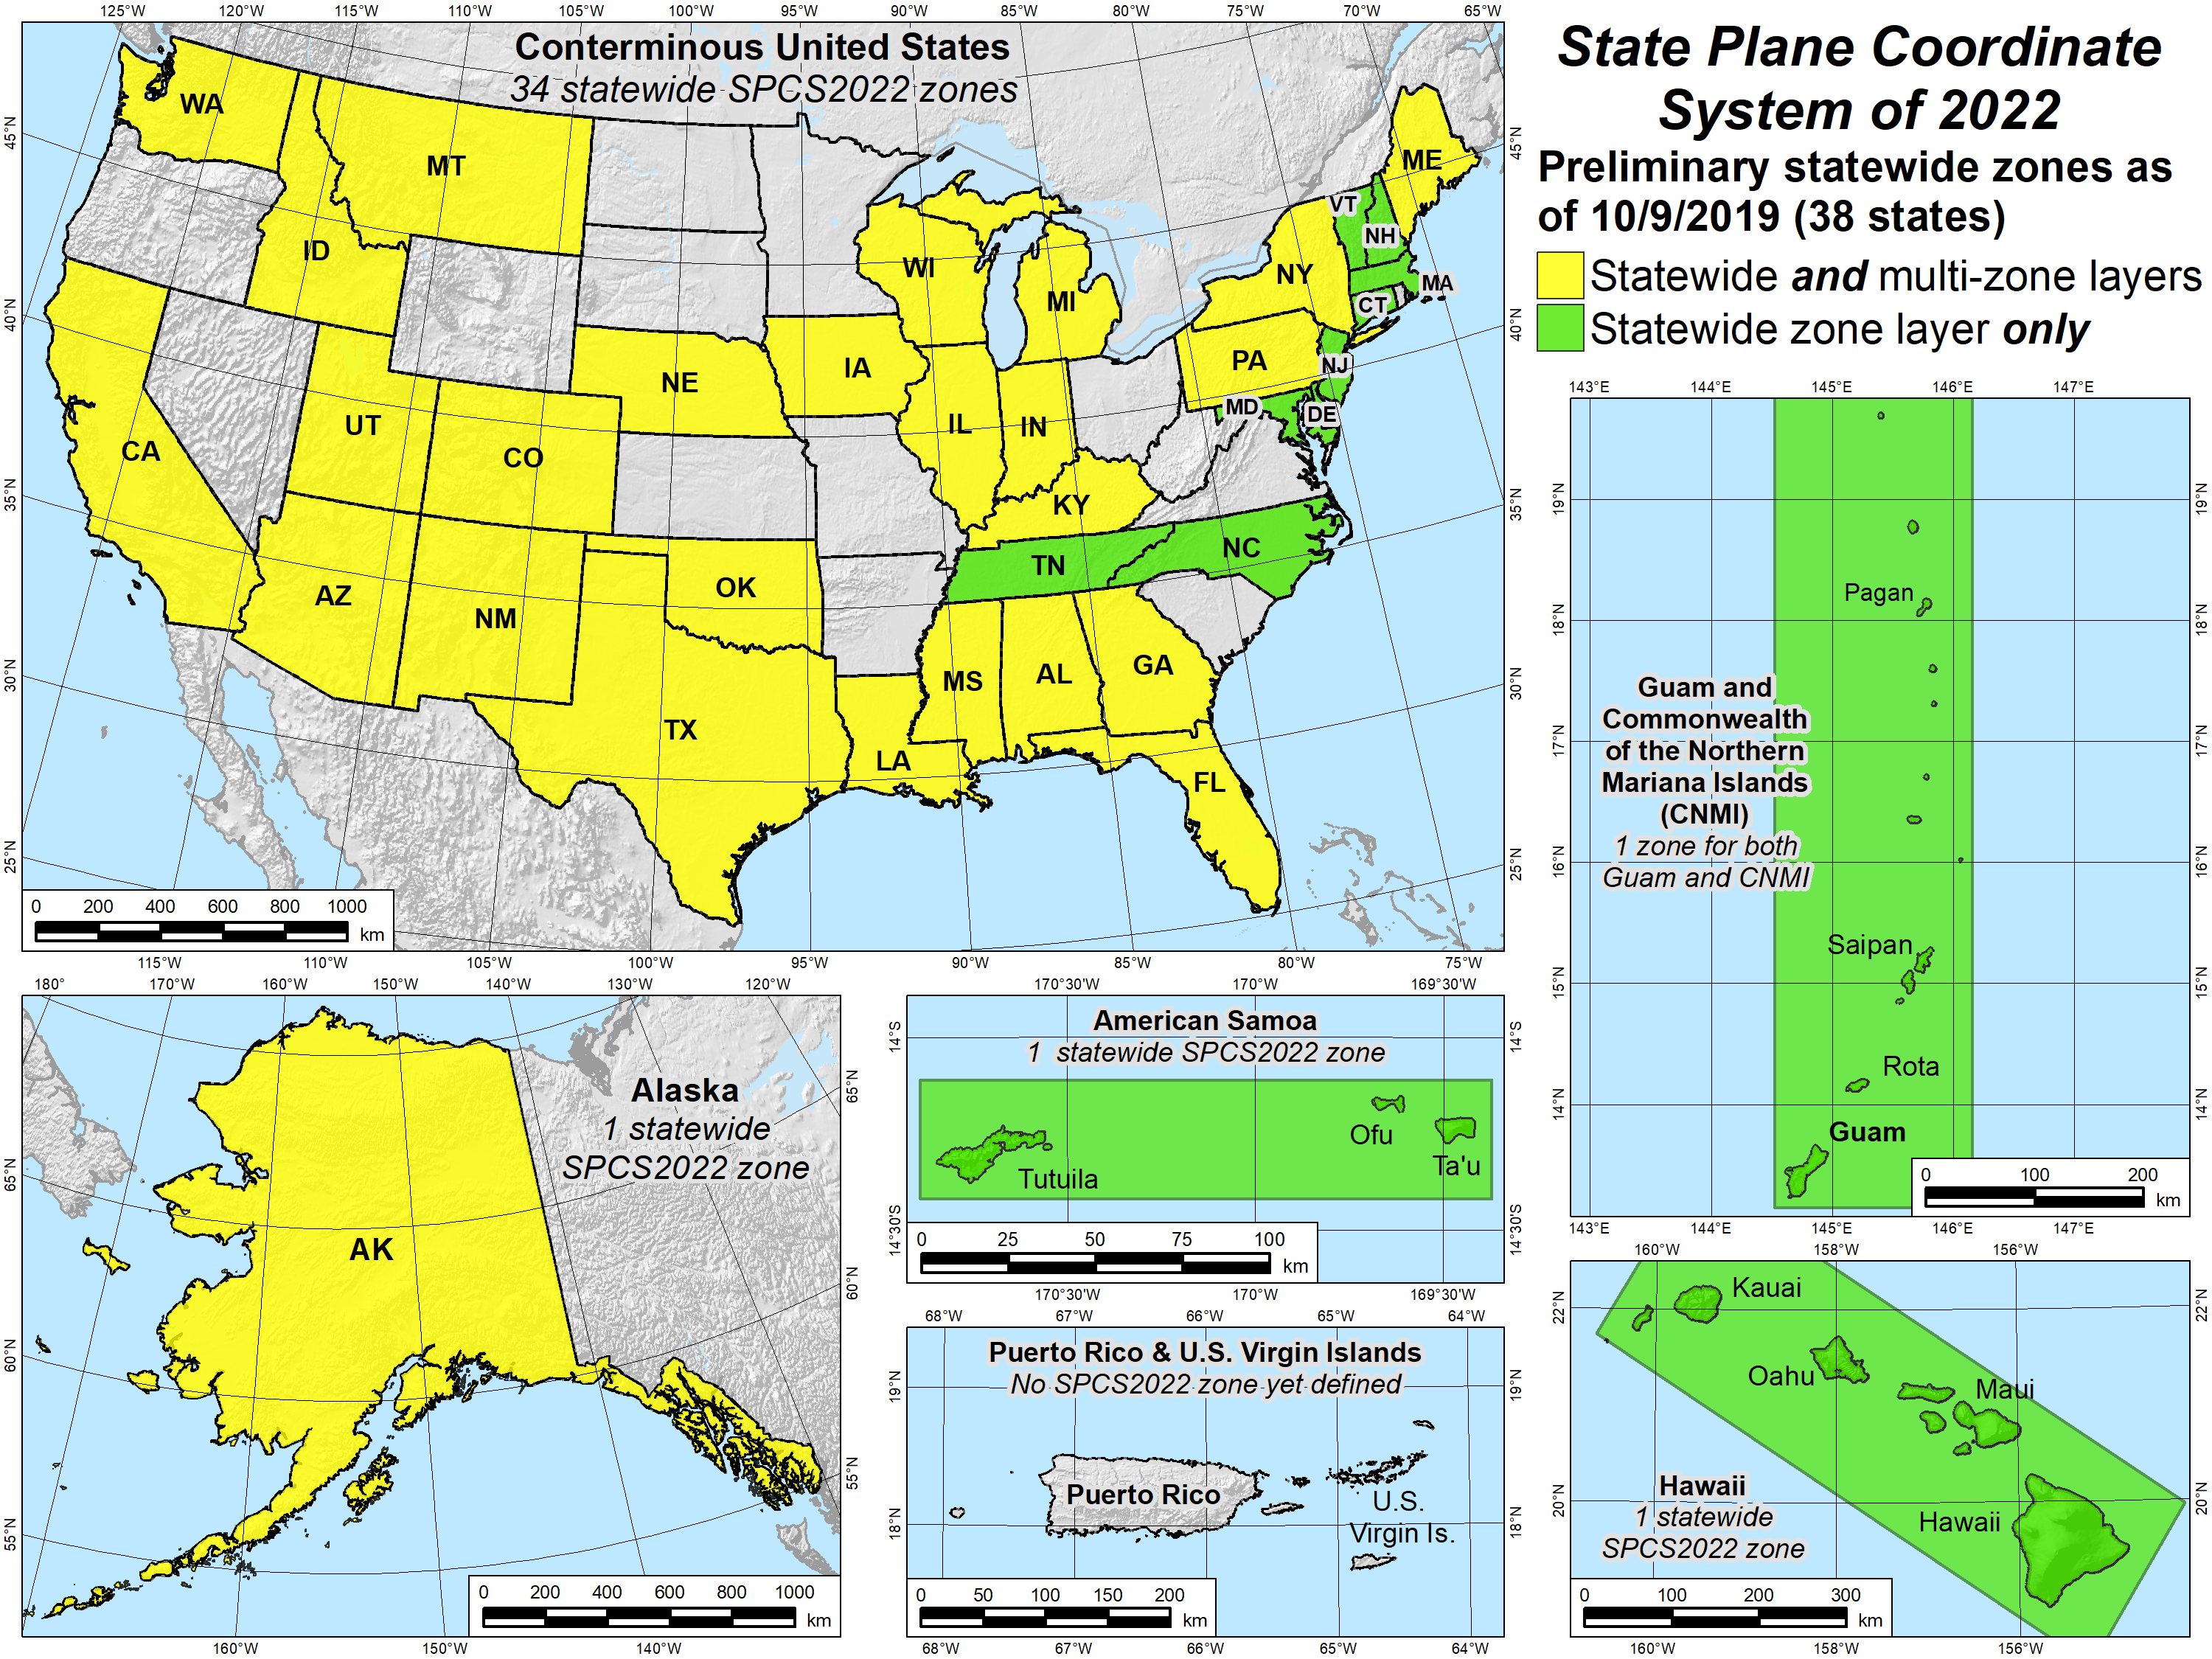 State Plane Coordinate System (SPCS) | Tools | National ... on california state plane map, texas state plane coordinate map, rectangular survey system map, indiana state plane coordinate zone map, example of coordinate system map, california coordinate system zone map, state of washington tribes map, missouri state plane coordinates map,